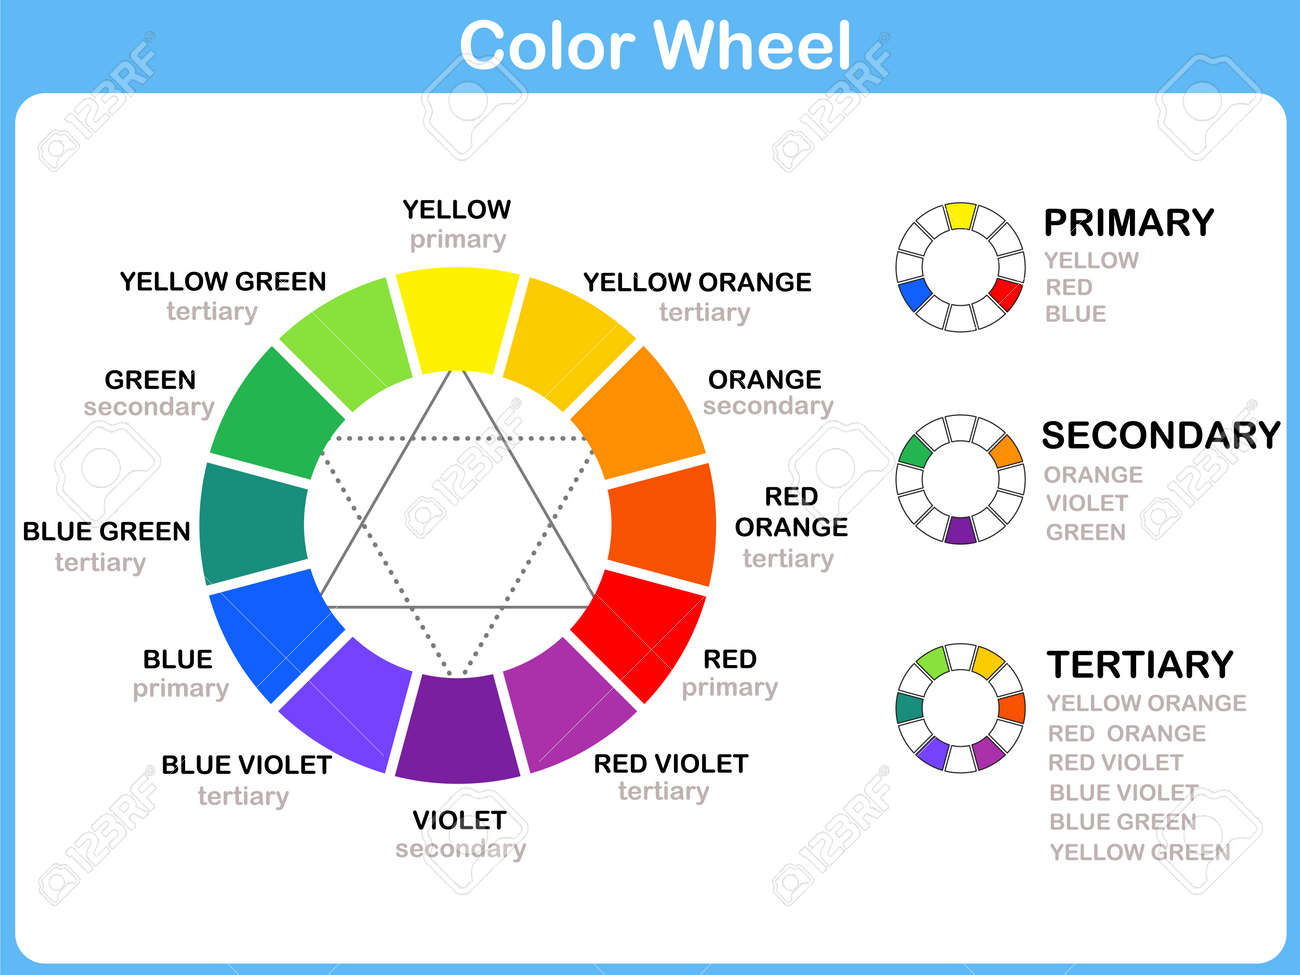 Worksheets Color Wheel Worksheet color wheel worksheet red blue yellow for kids royalty stock vector 35185375